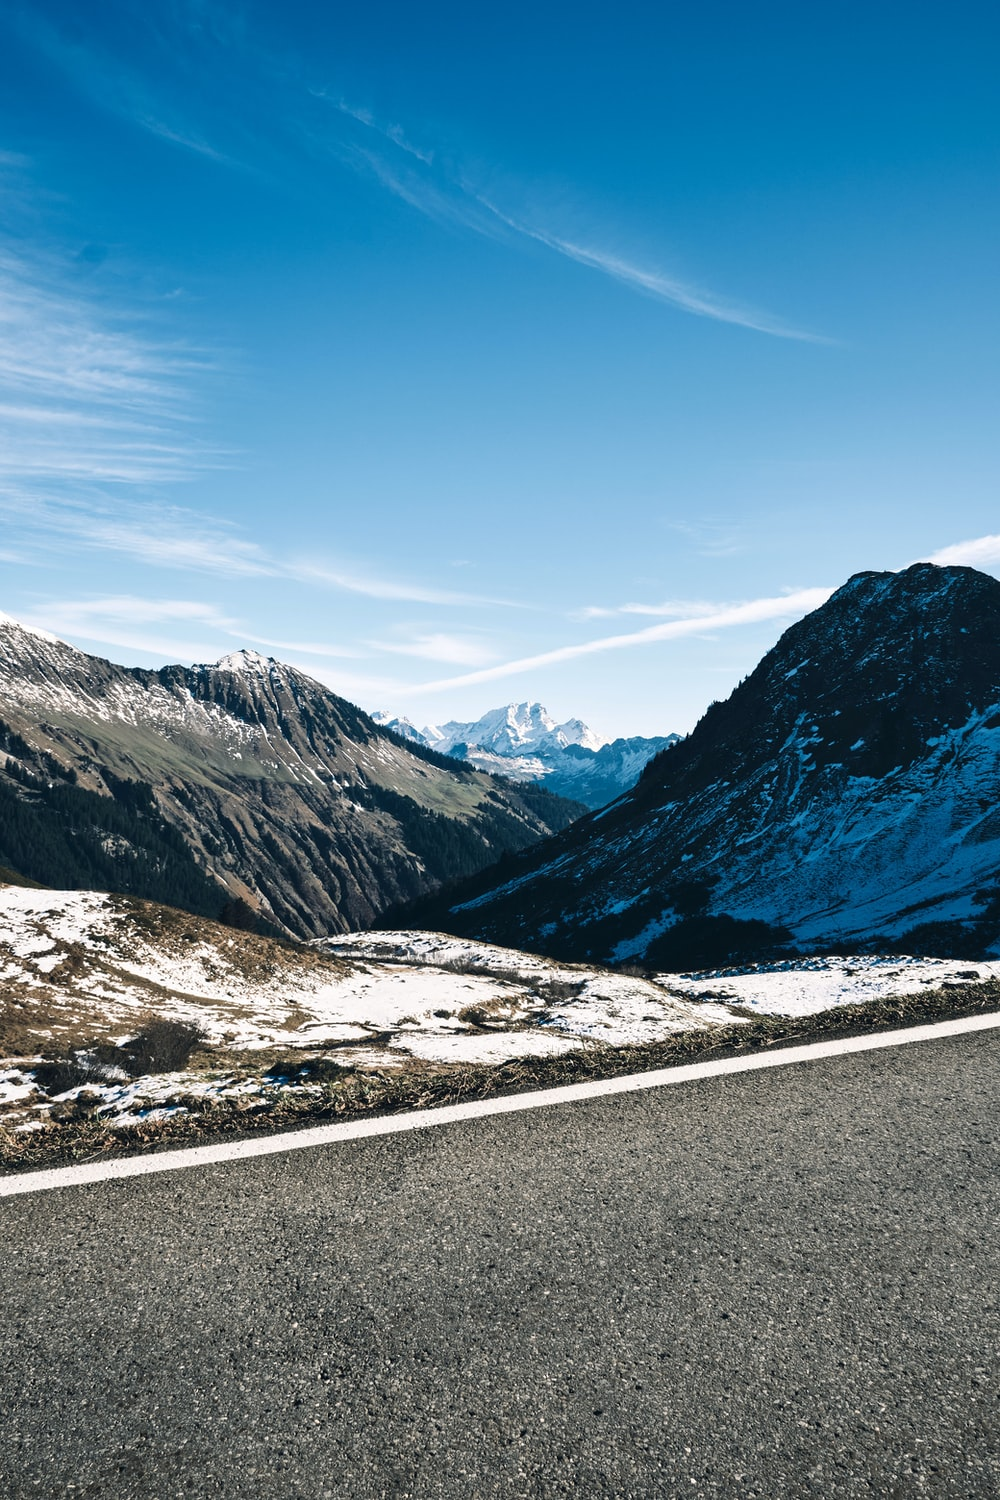 gray concrete road near snow covered mountains under blue sky during daytime